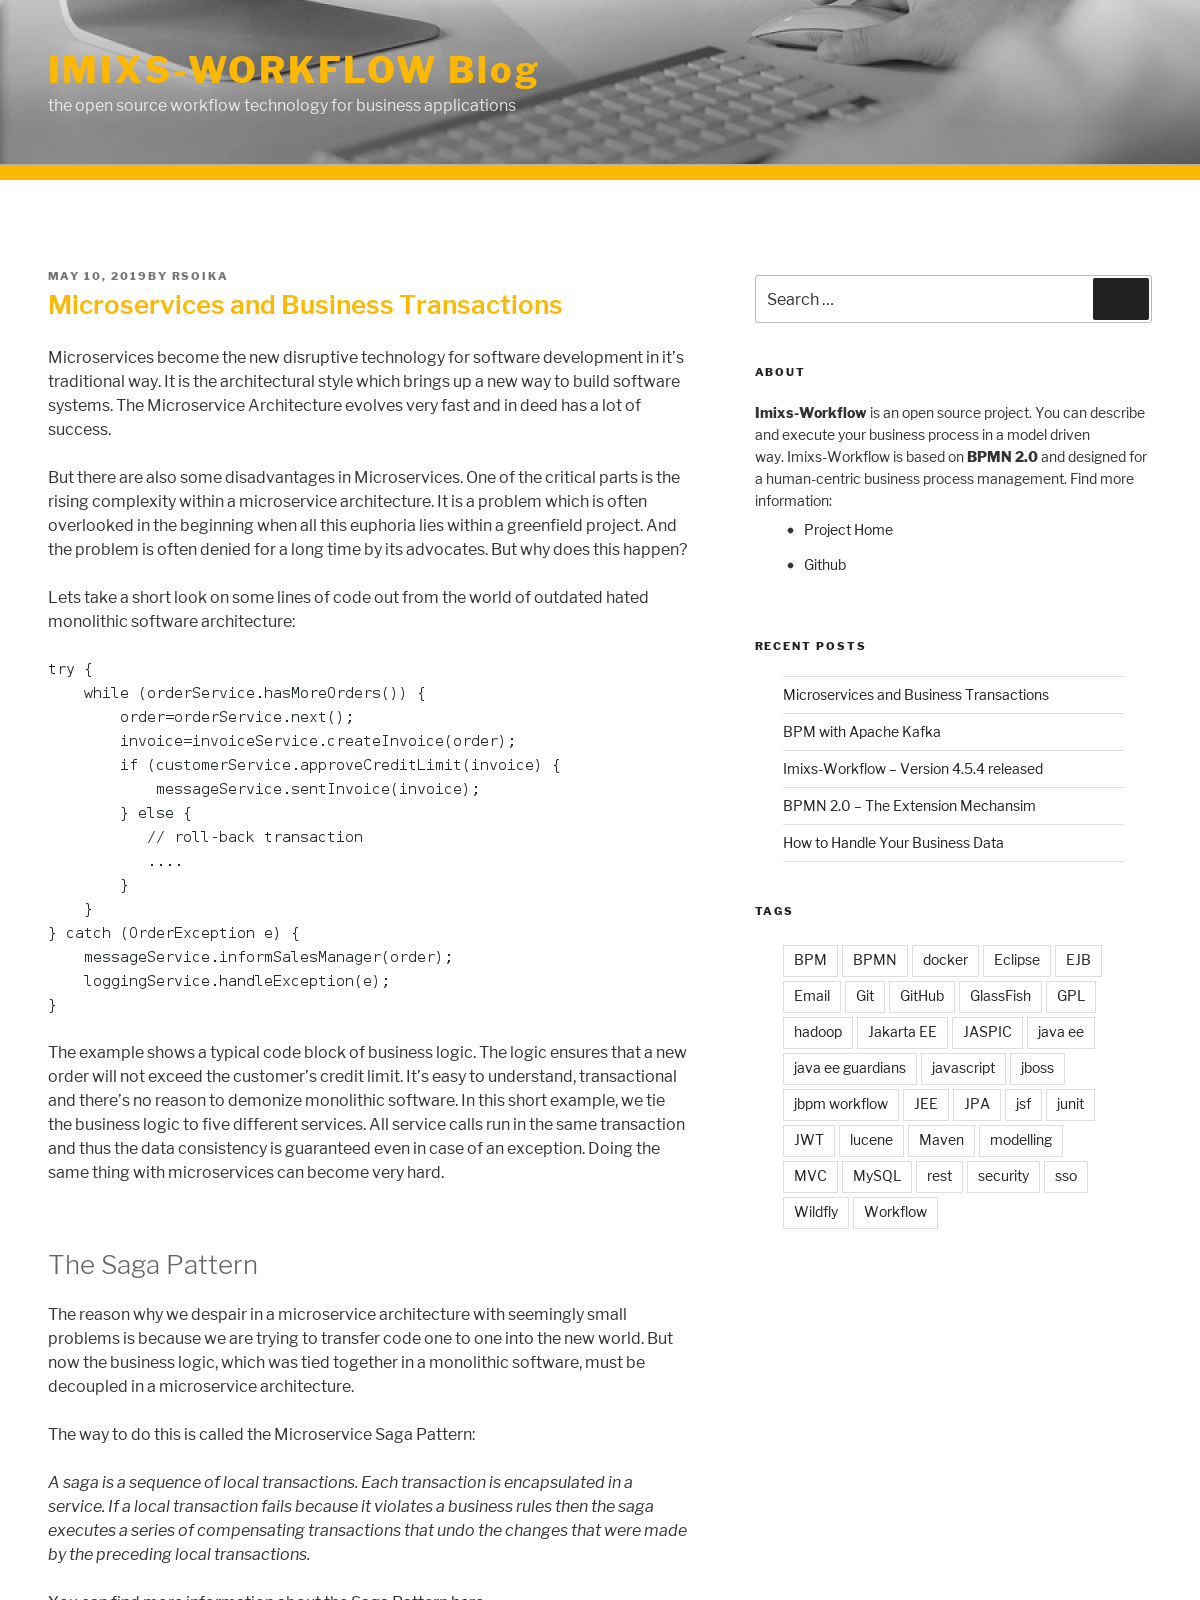 Microservices and Business Transactions - BPI - The